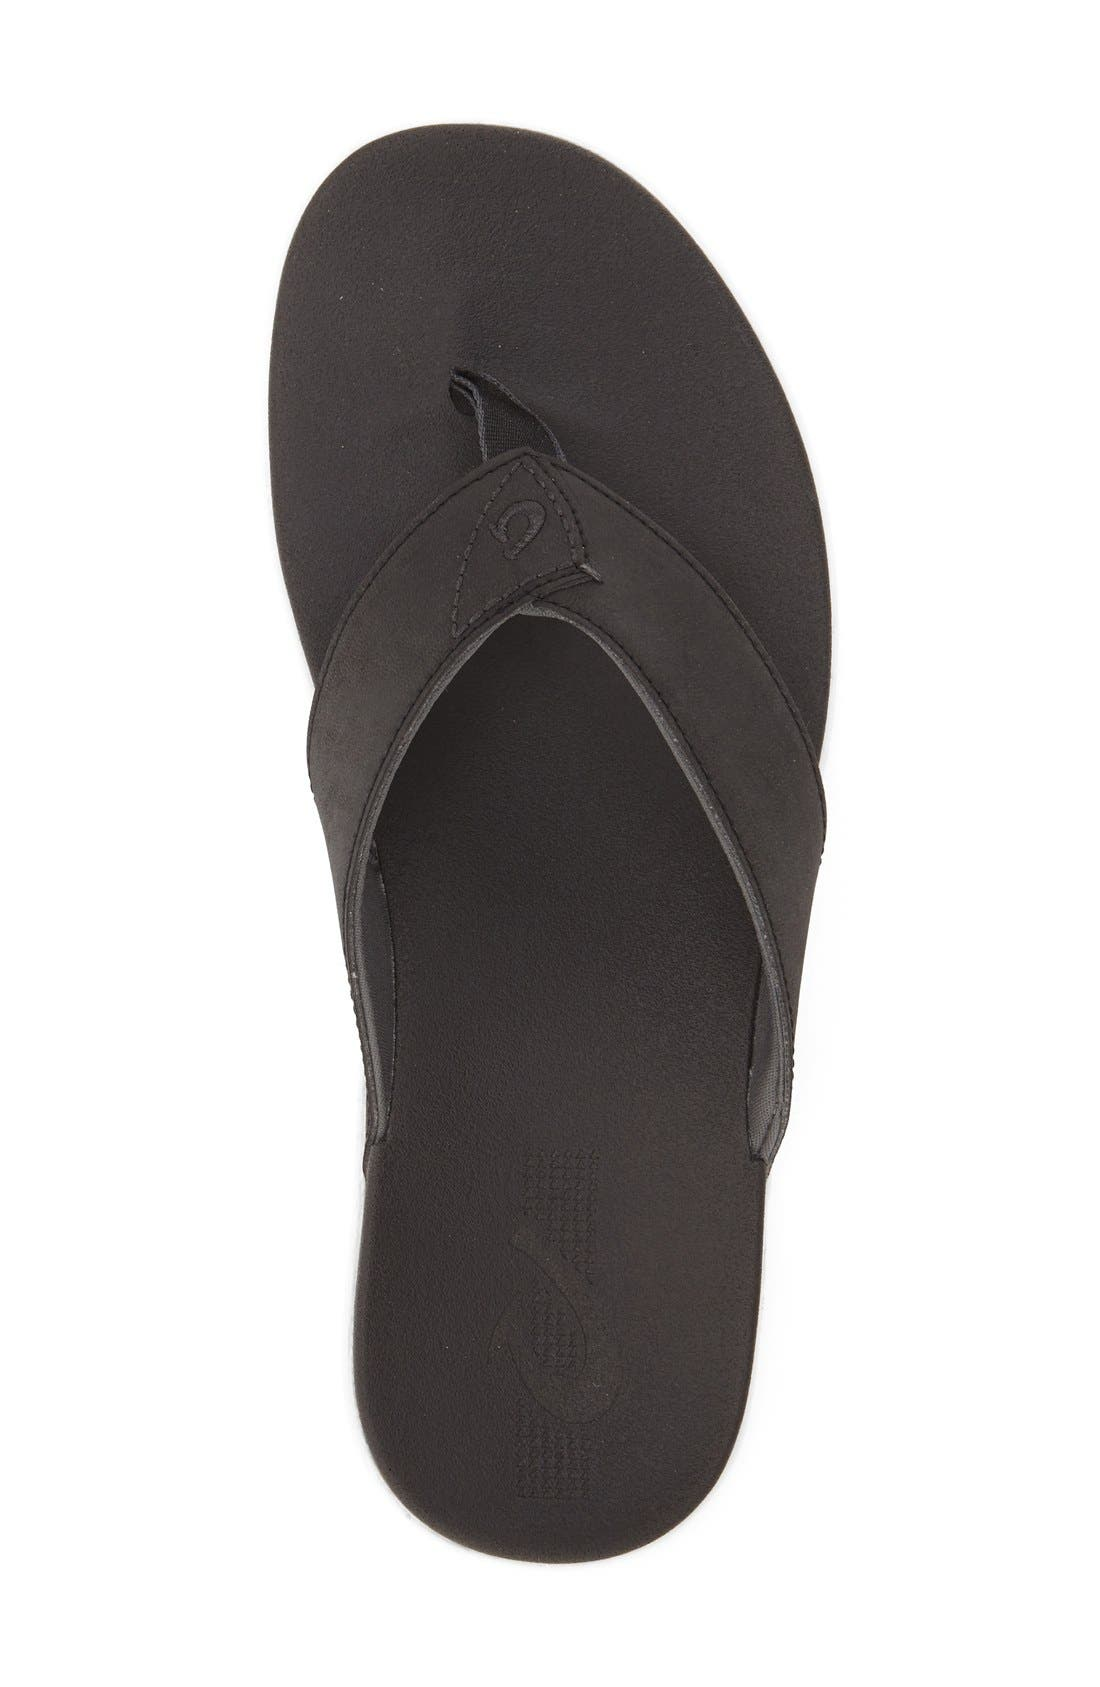 OLUKAI,                             'Holona' Flip Flop,                             Alternate thumbnail 3, color,                             001